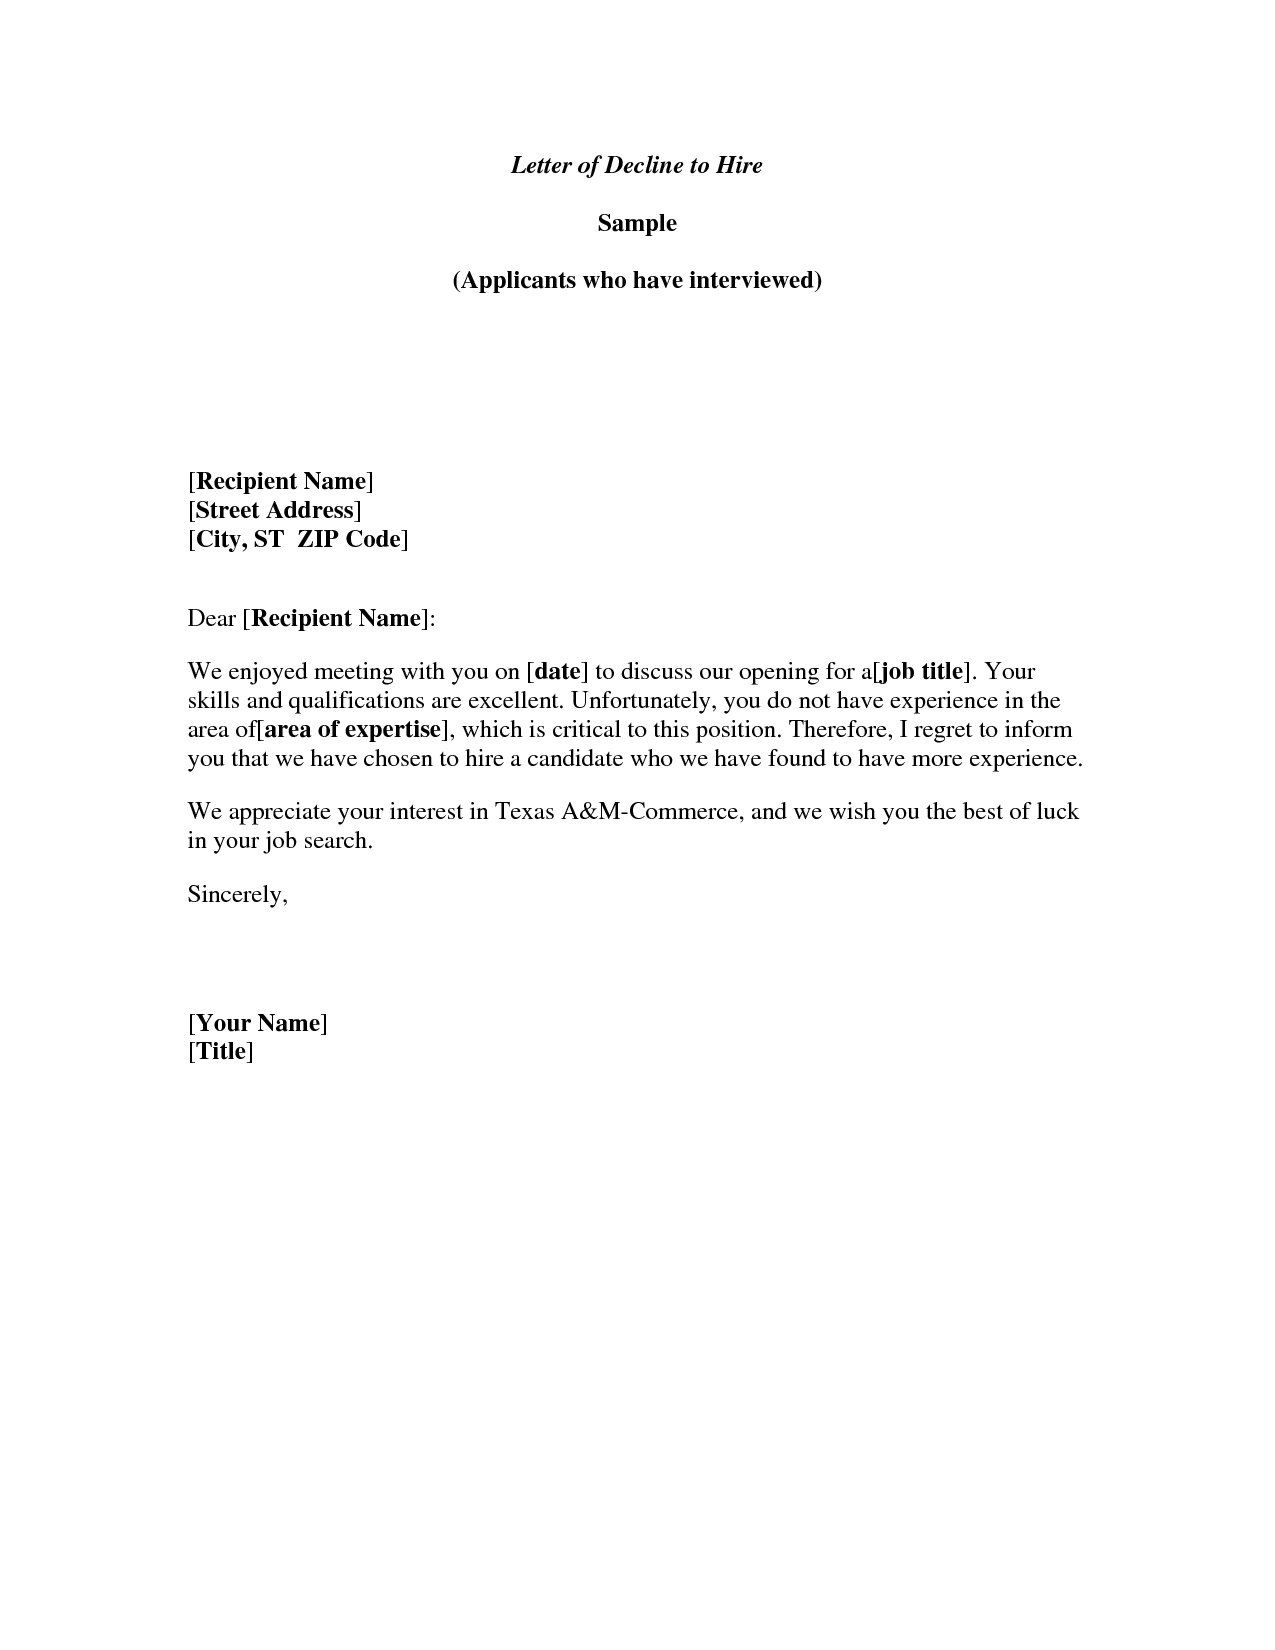 Rejection Letter Template after Interview - Meeting Decline Letter Well Written Example Letter for Declining